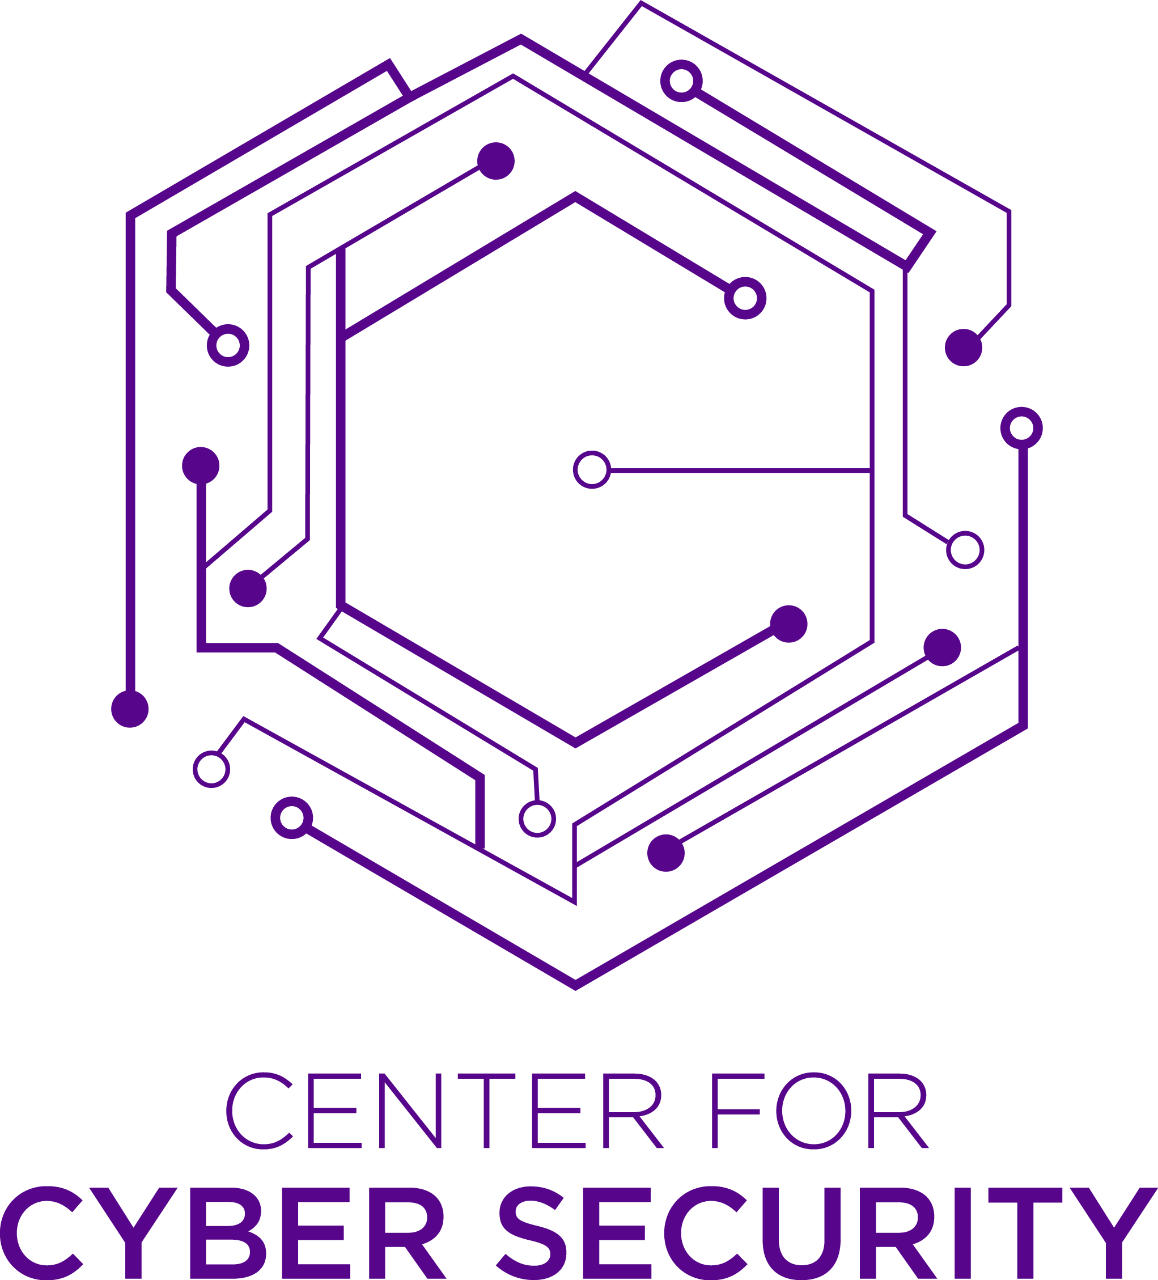 To establish a world class cyber security center by partnering with key local universities, industry and government agencies in order to facilitate cyber security research, education and practice in the UAE and more generally in the GCC region. The center will act as a catalyst to improve cyber security in the UAE and enhance its regional and global competitiveness in this field. CCS is affiliated with CCS New York.